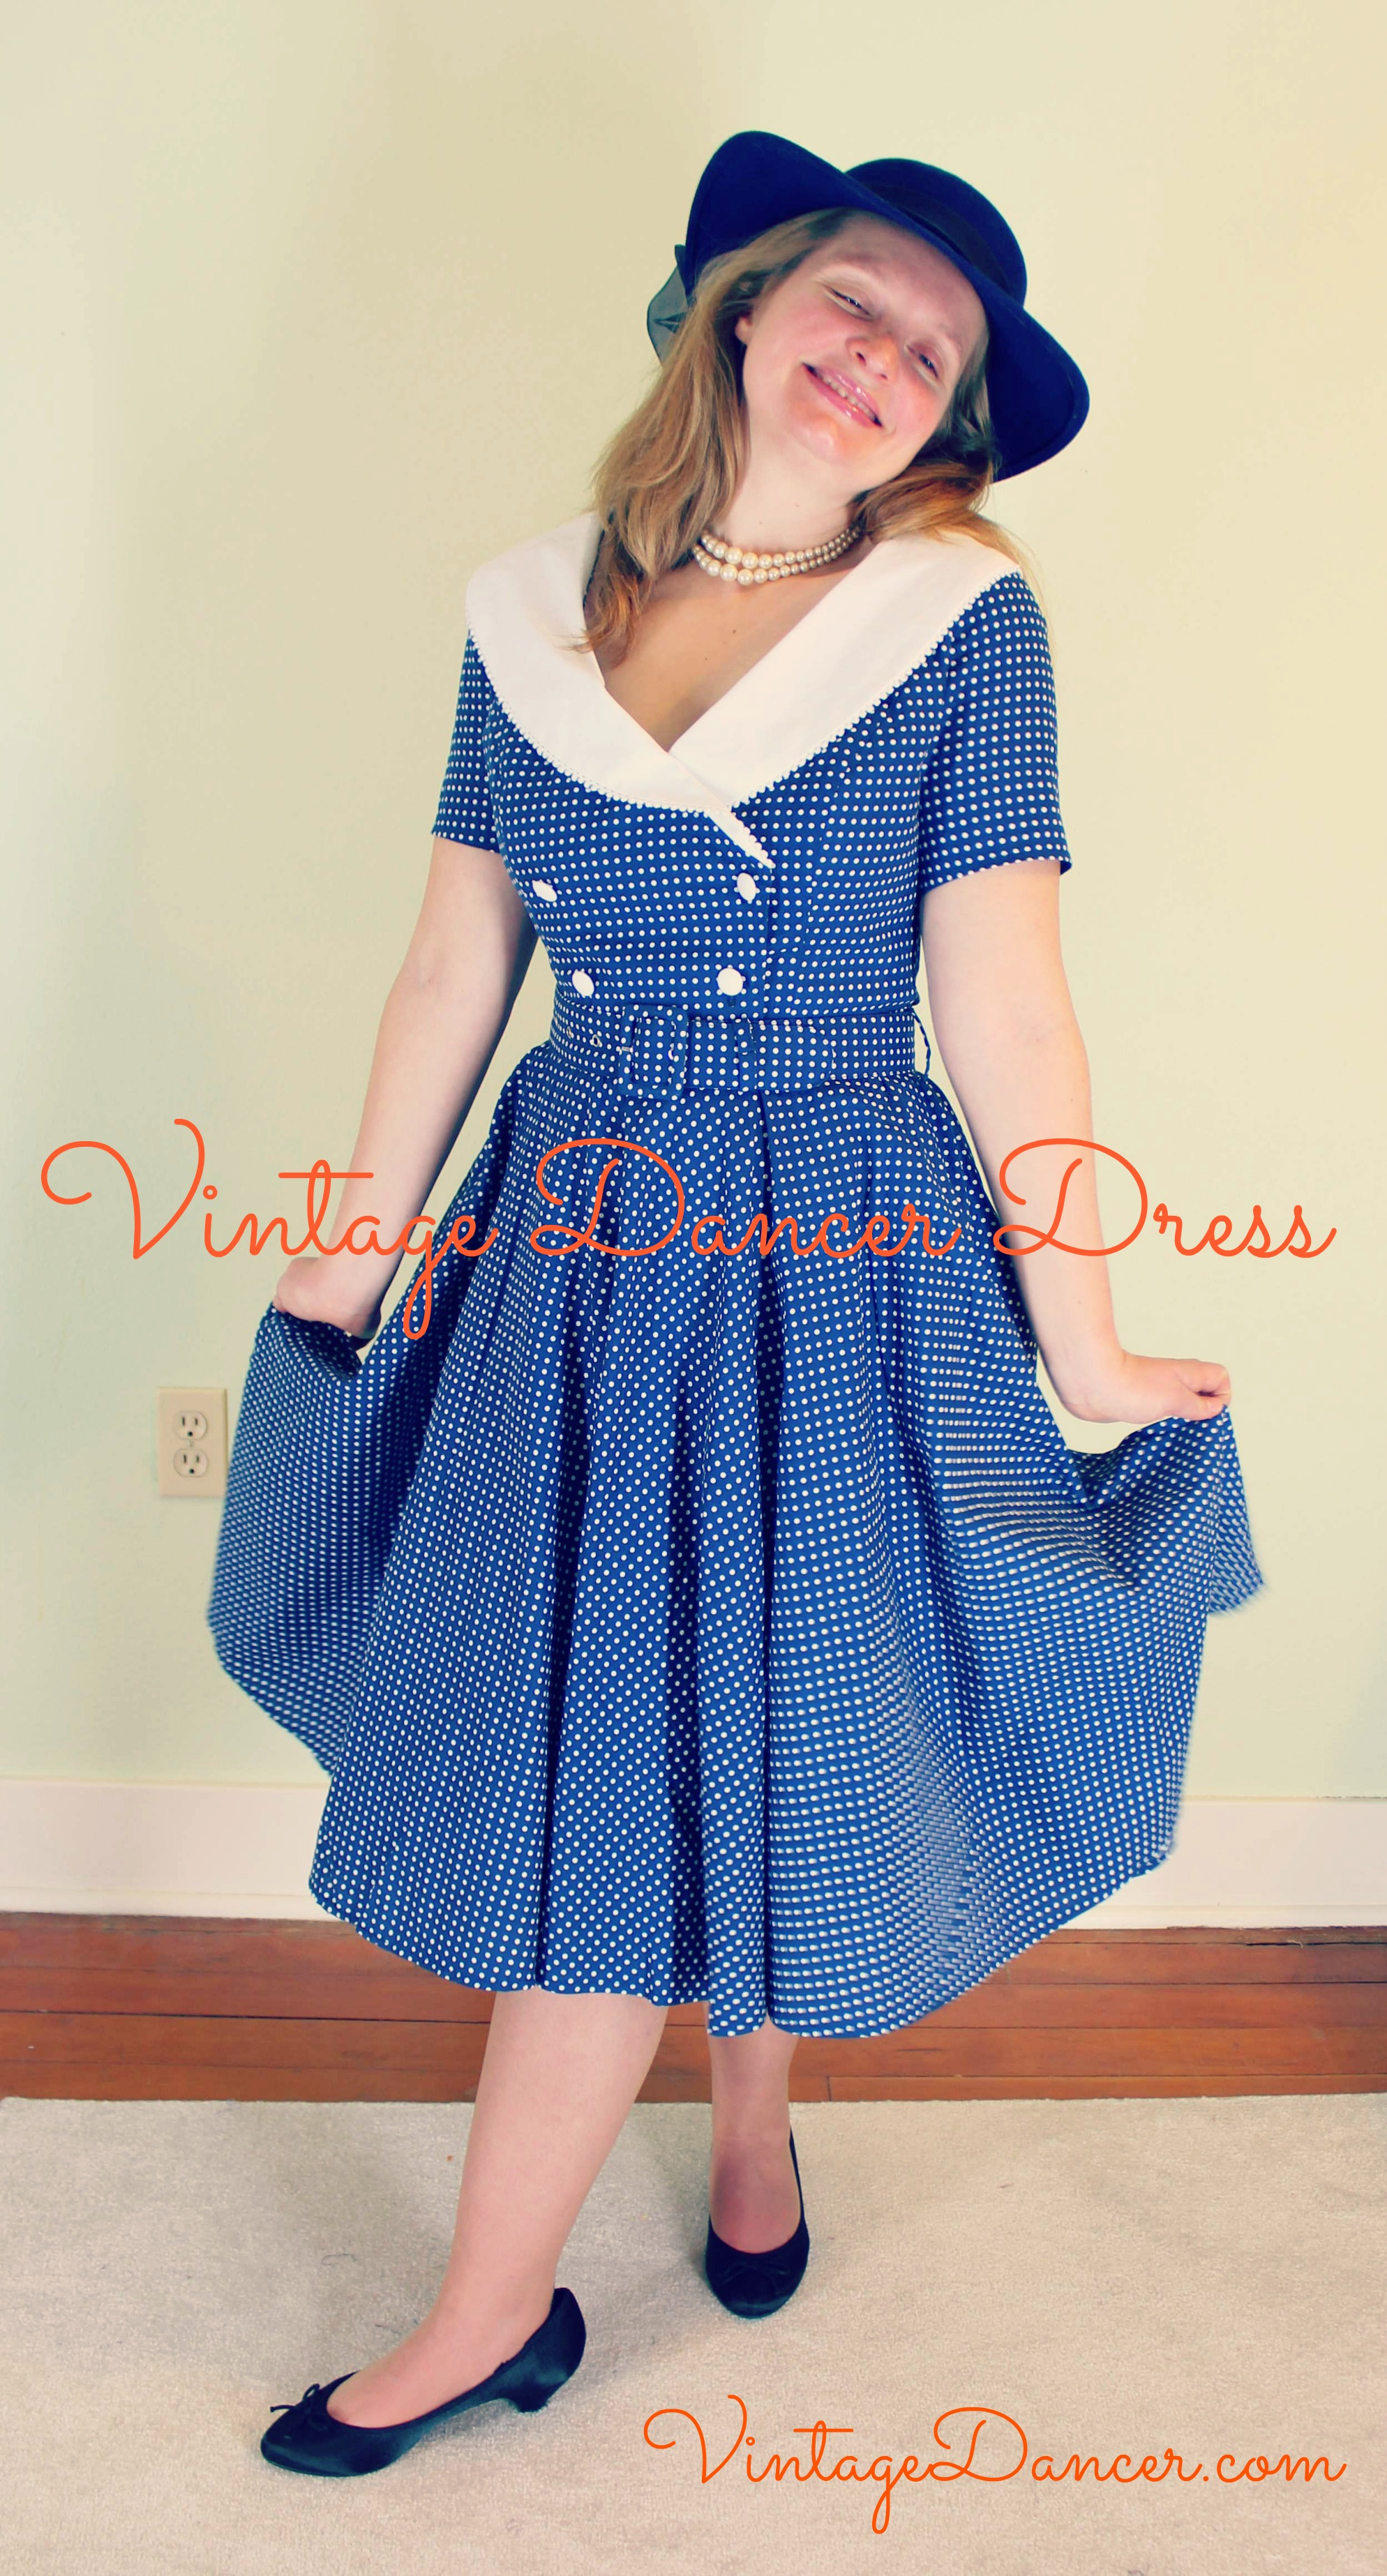 The Vintage Dancer Dress -1950's Swing Dress Review